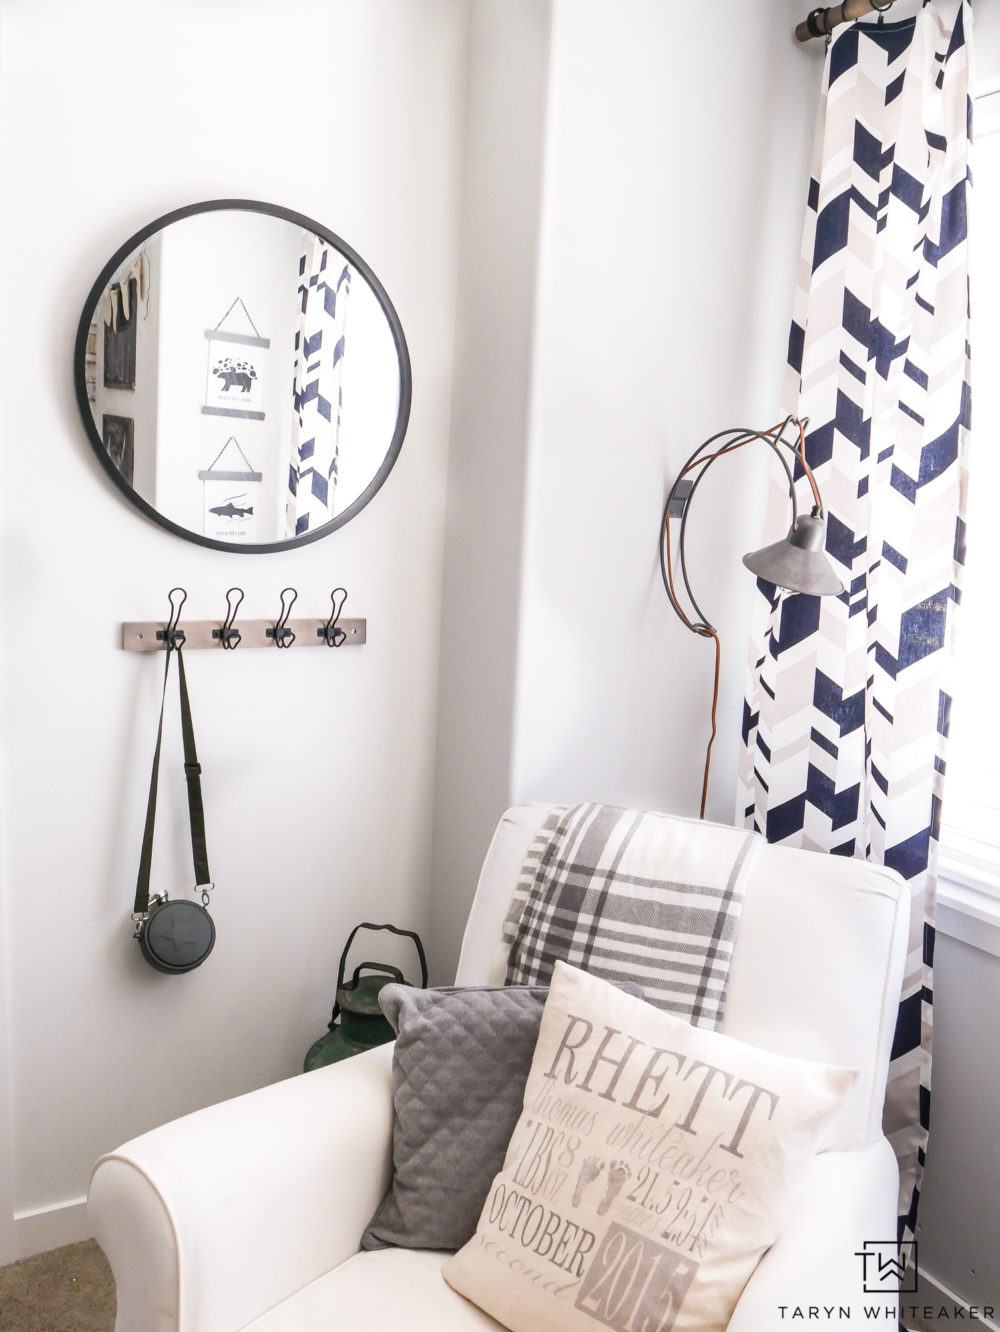 Cozy reading corner in boy's room! Love the circle mirror and geometric curtains.